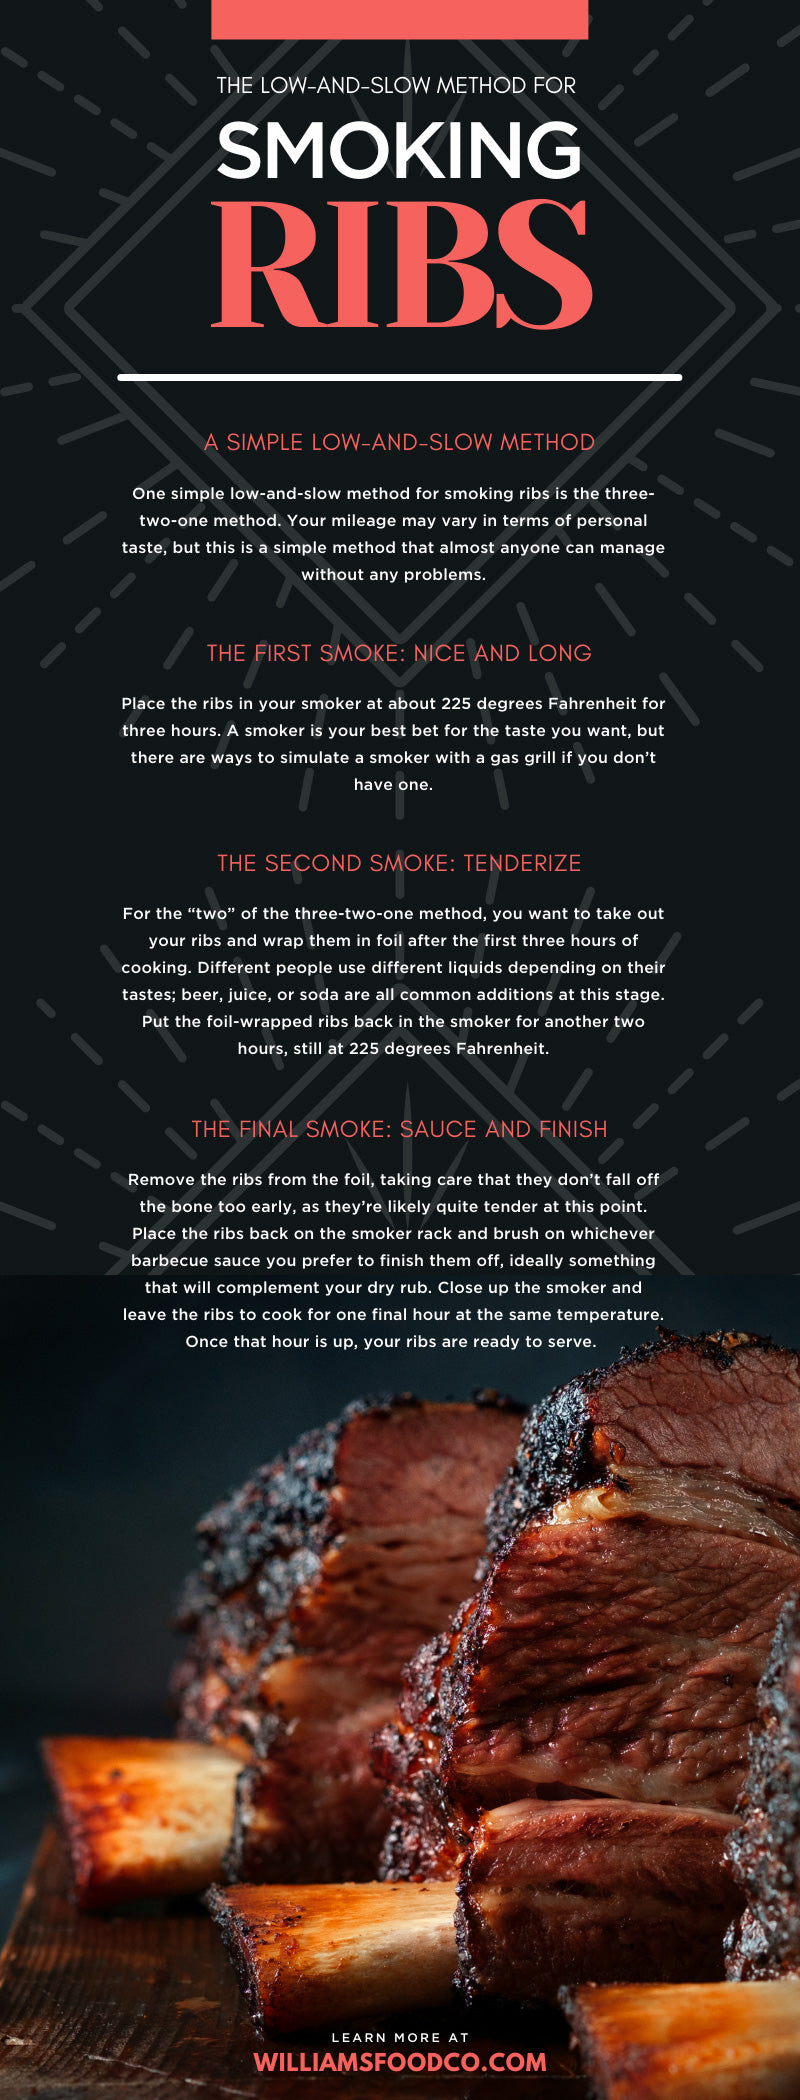 The Low-and-Slow Method for Smoking Ribs